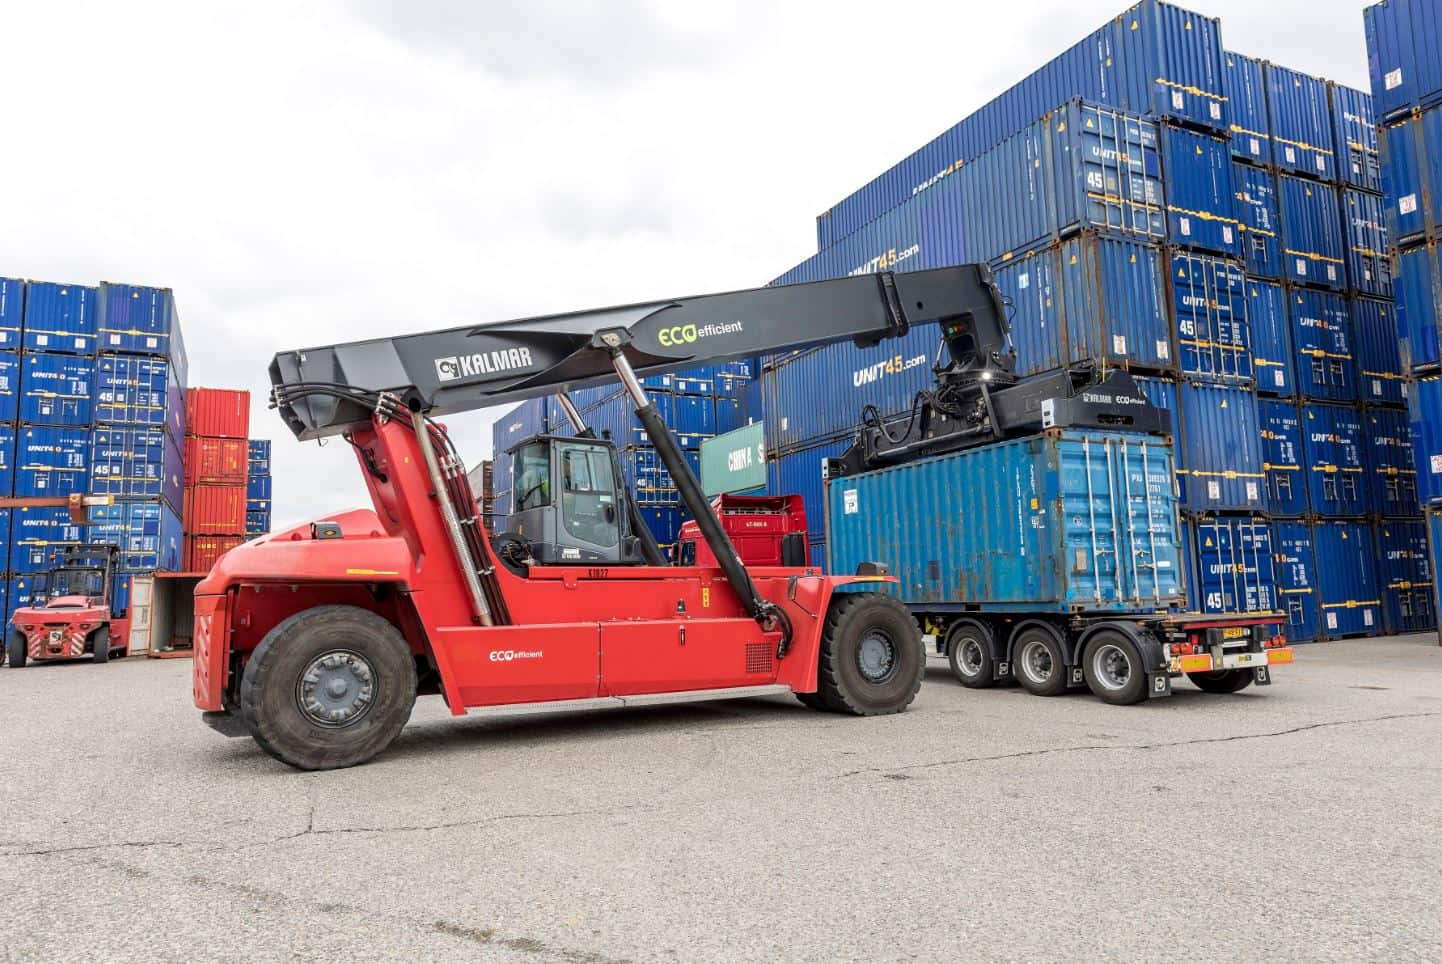 Six new Kalmar Eco reachstackers for Turkish equipment rental company